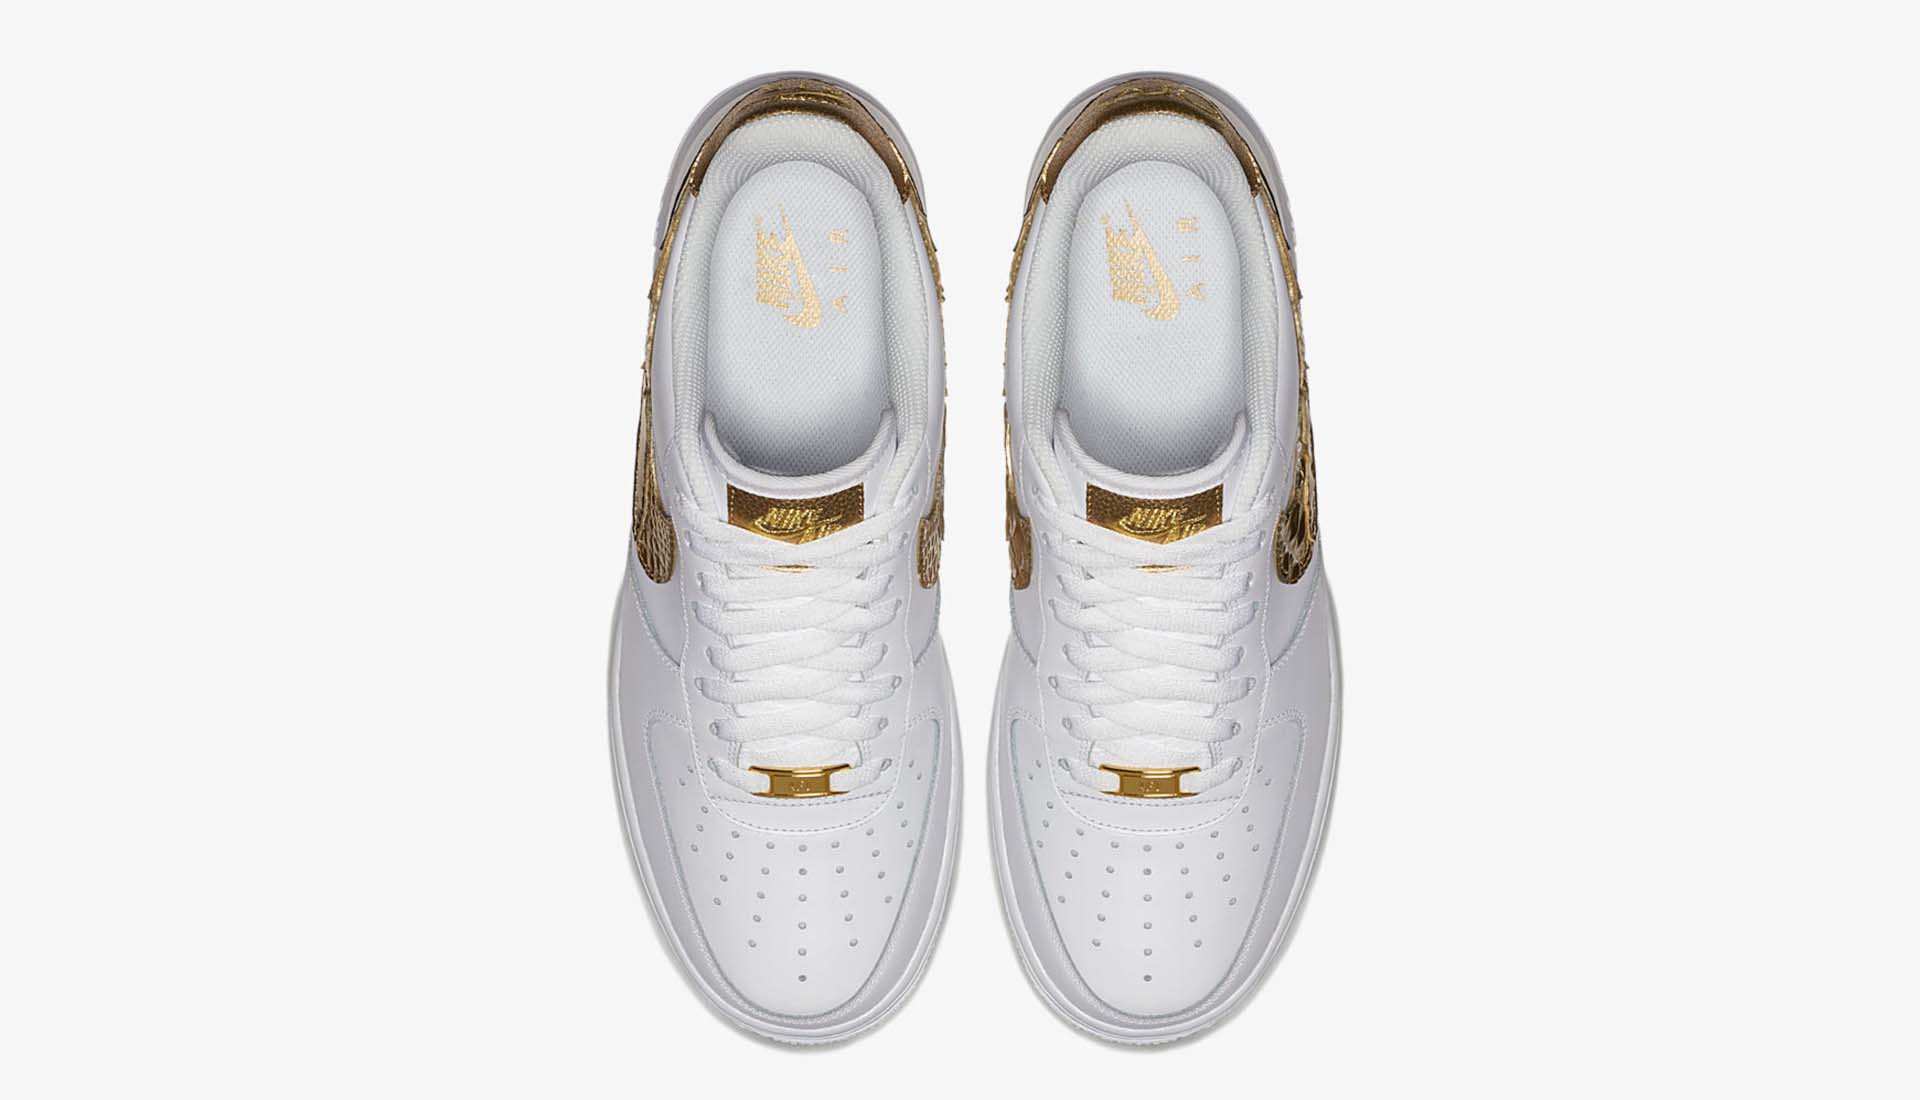 Teórico Seguro inyectar  Nike Air Force 1 CR7 Golden Patchwork Sneakers - SoccerBible